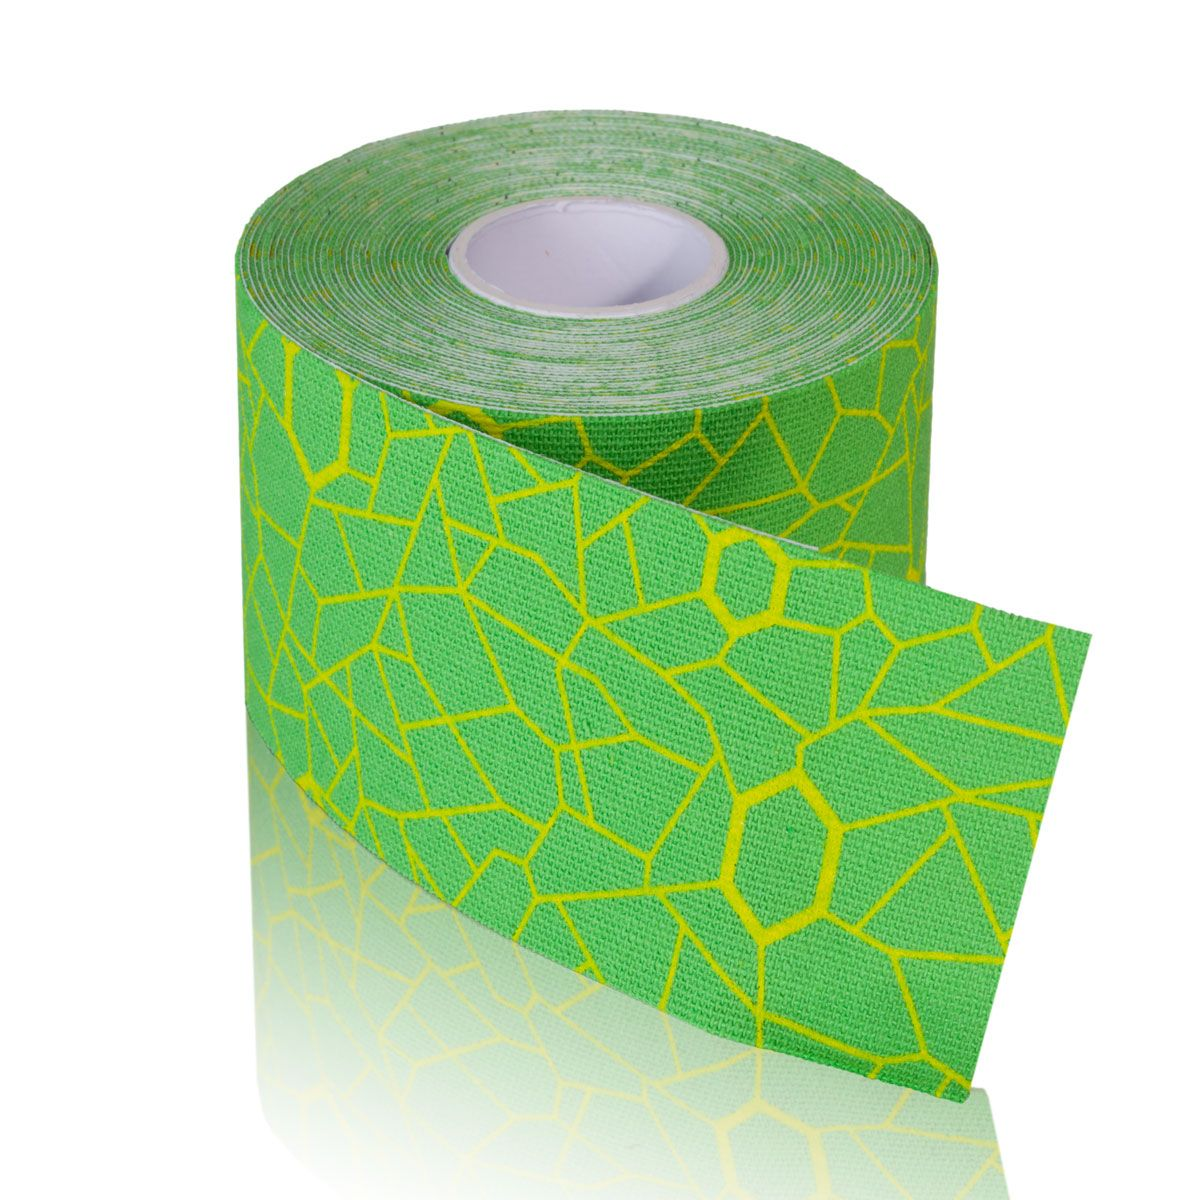 TheraBand Kinesiology Tape - (1) 2 in. x 16.4 ft. Roll - Green/Yellow